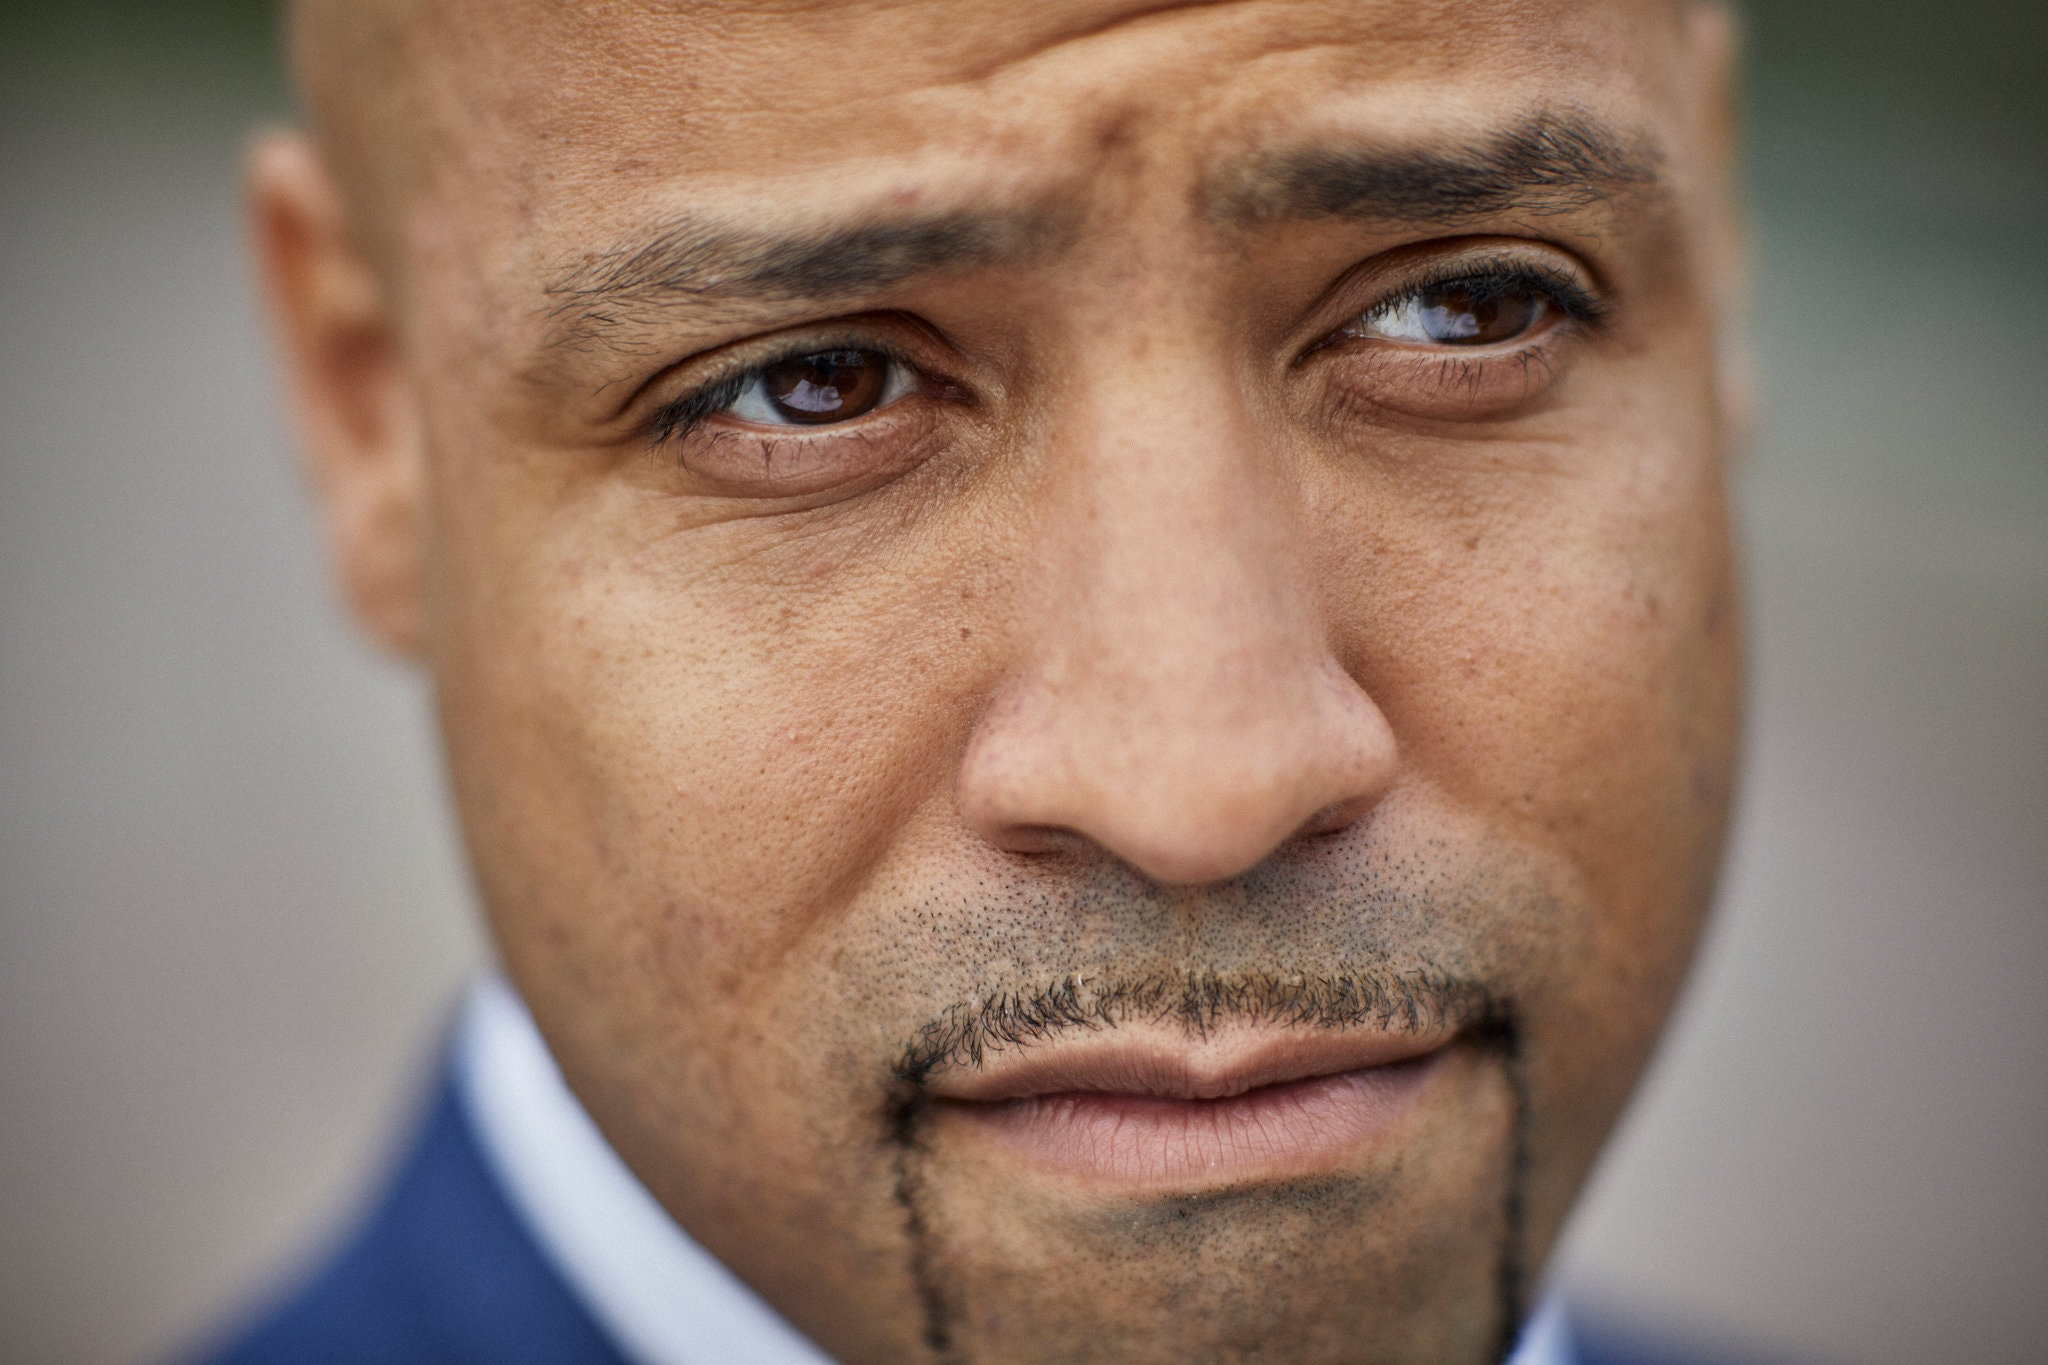 Darryl Epps, the author's brother, is now making his mark in the Justice-in-Education program at Columbia University. Credit: Chad Batka for The New York Times